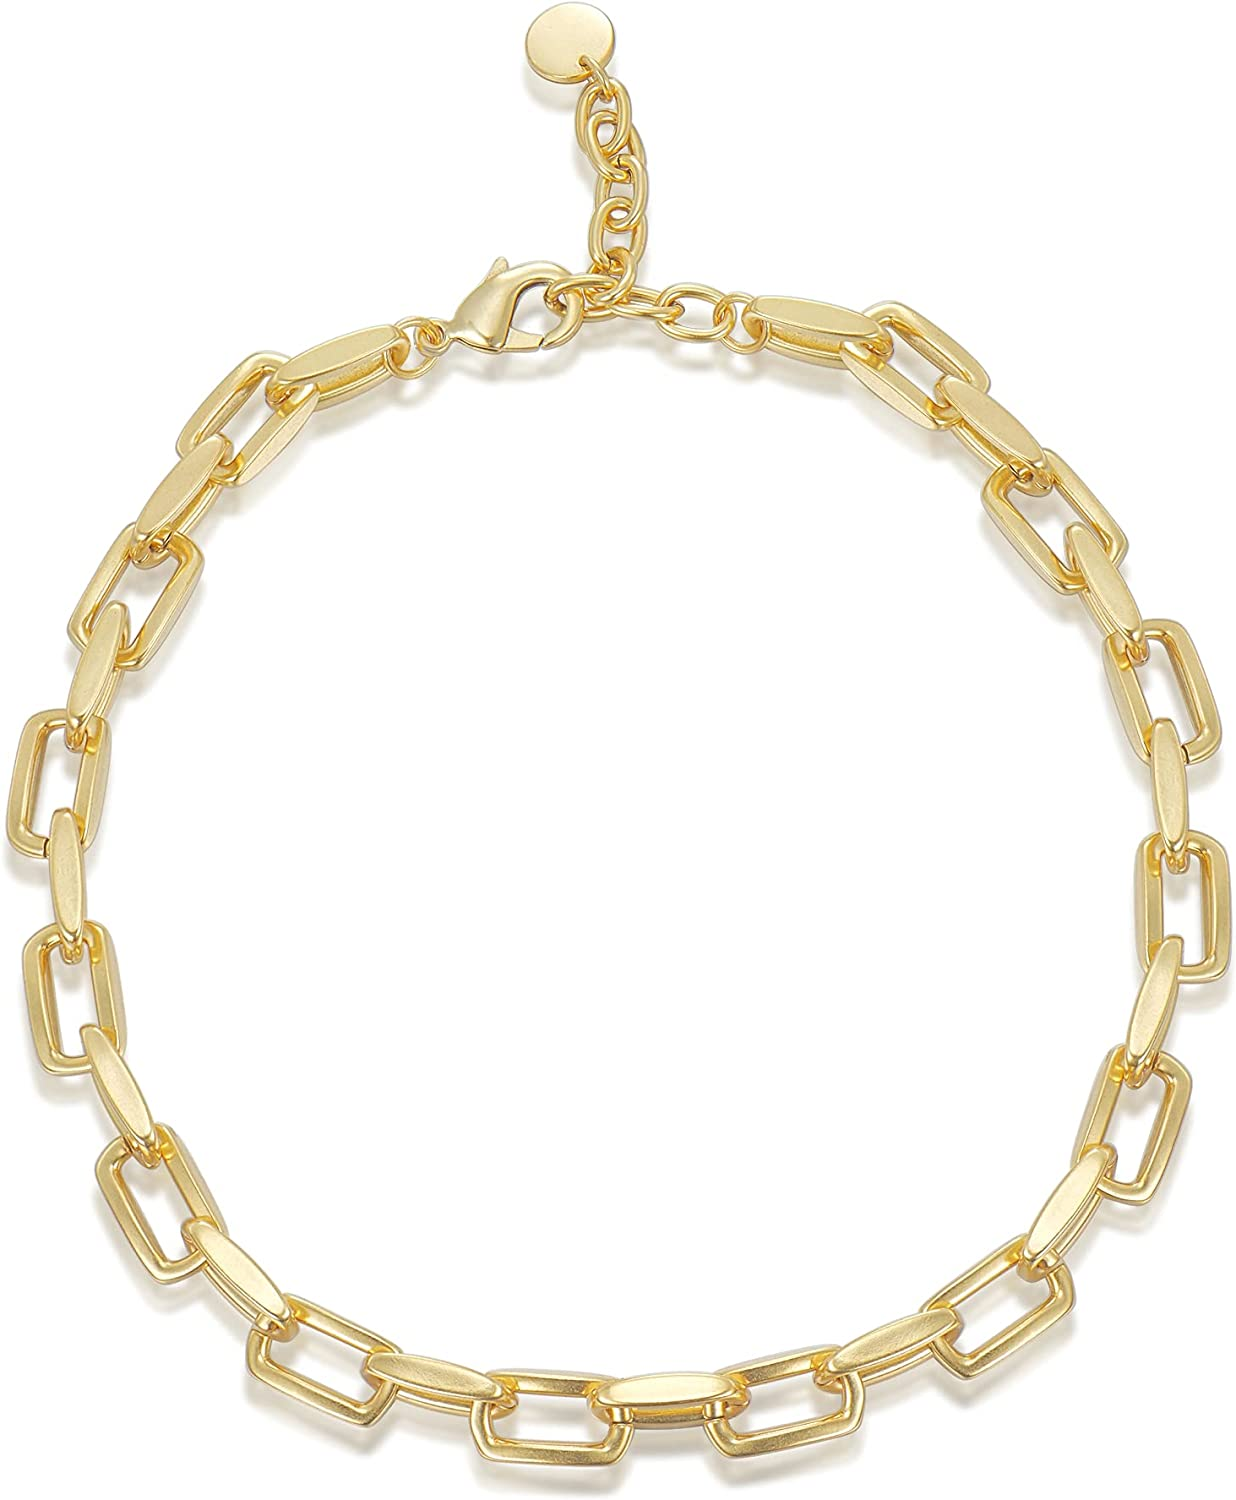 QOZAINE Matte Frosted 18K Real Gold Plated Thick Chunky Chain Necklace for Women Teen Girls, Dainty Paperclip Link Chain Chocker,9mm Width, 2mm Thick, Color Won't Fade